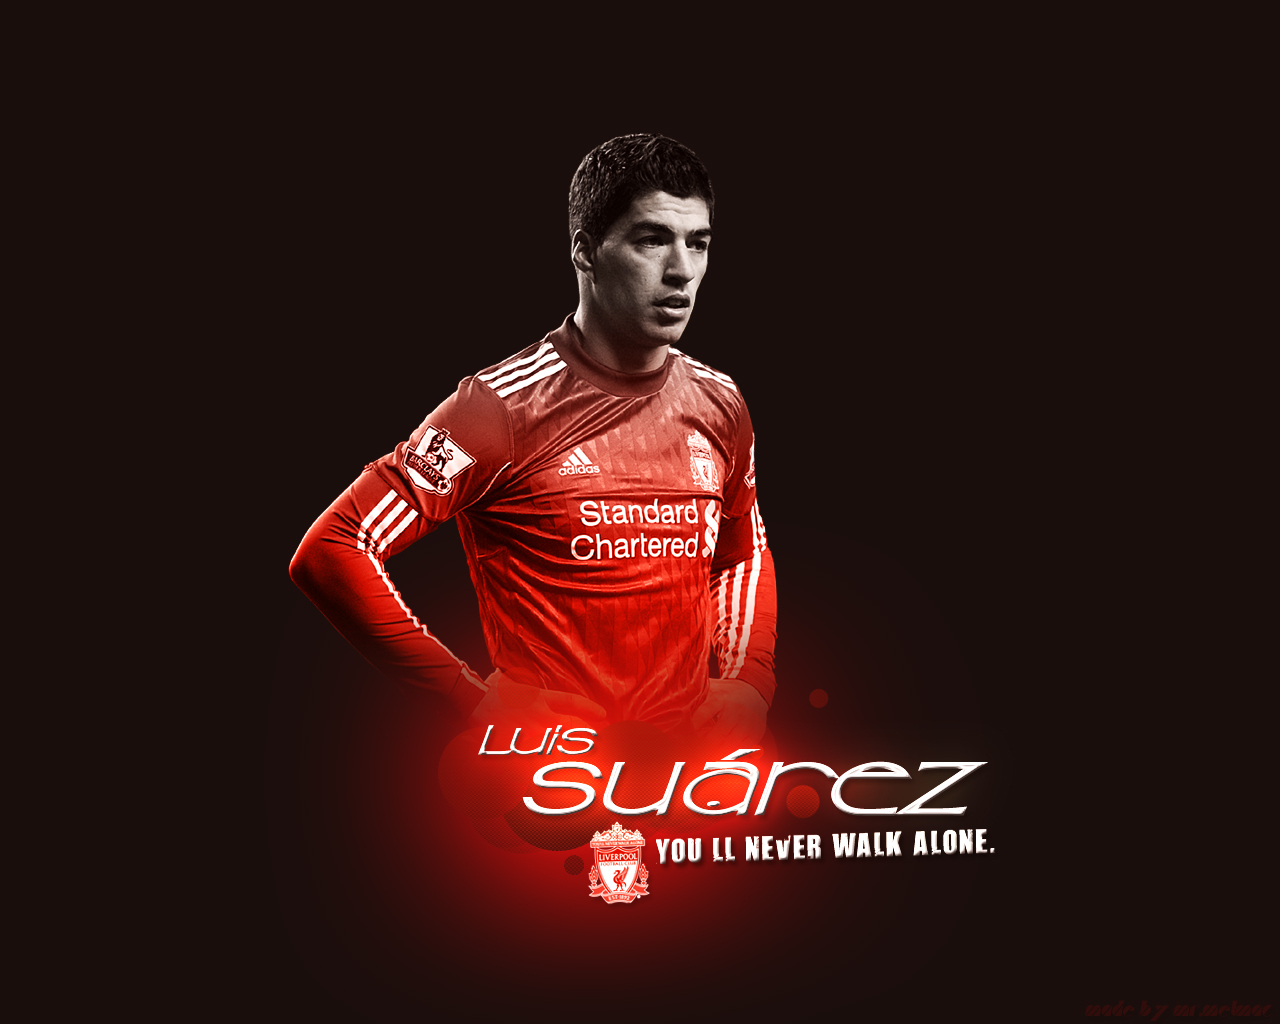 Liverpool luis suarez wallpaper full hd pictures - Suarez liverpool wallpaper ...